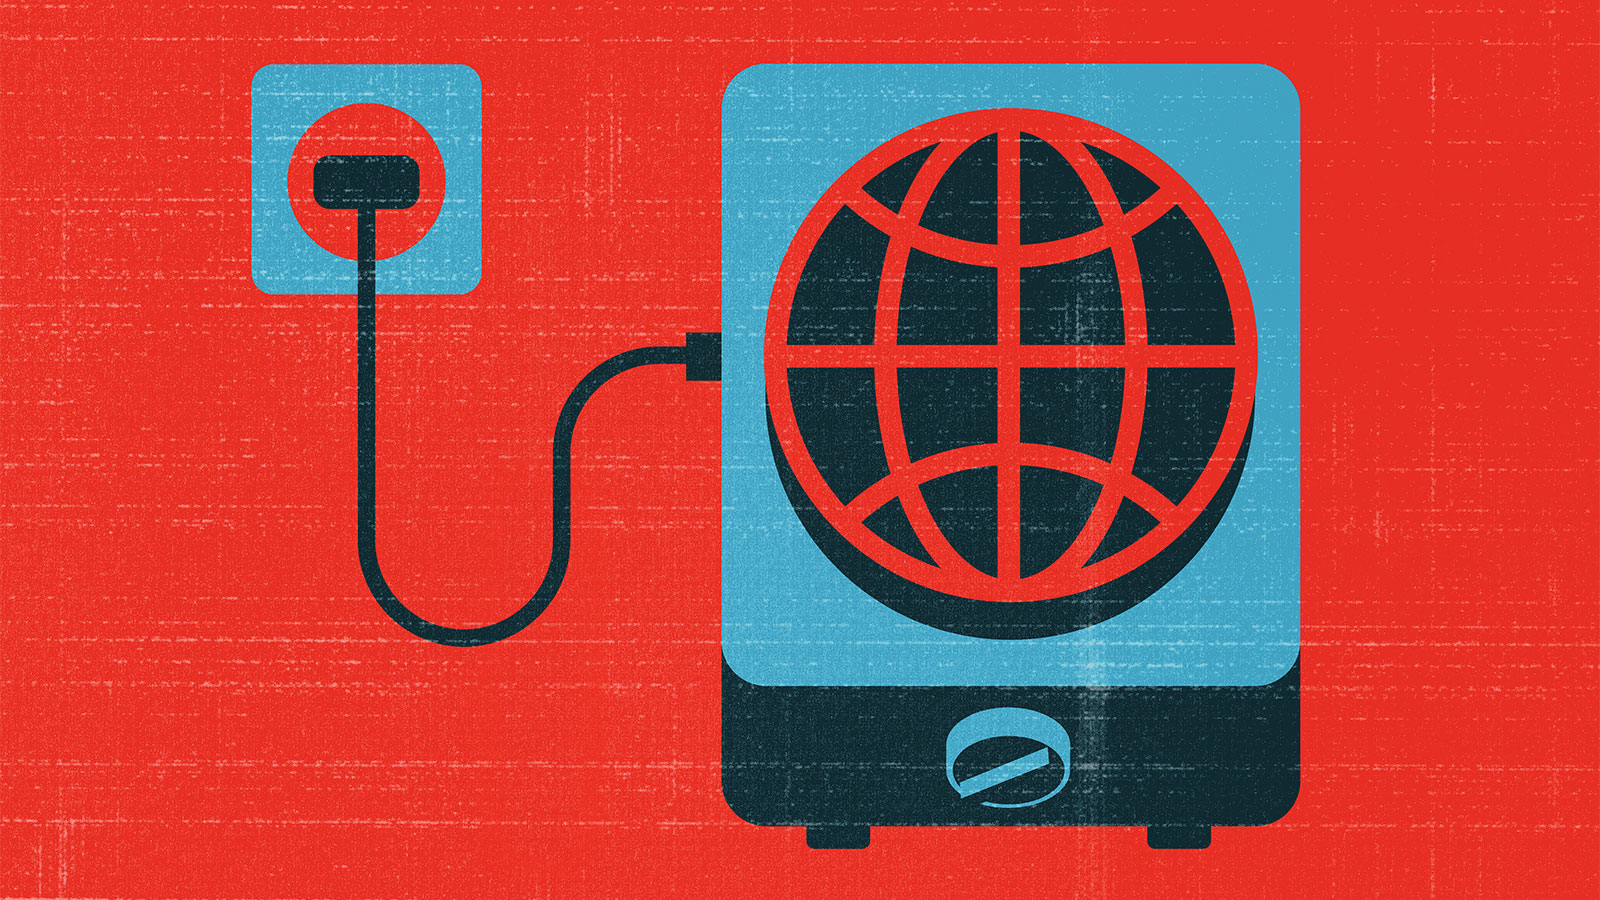 Illustration: an electric heater with a design of a globe on it